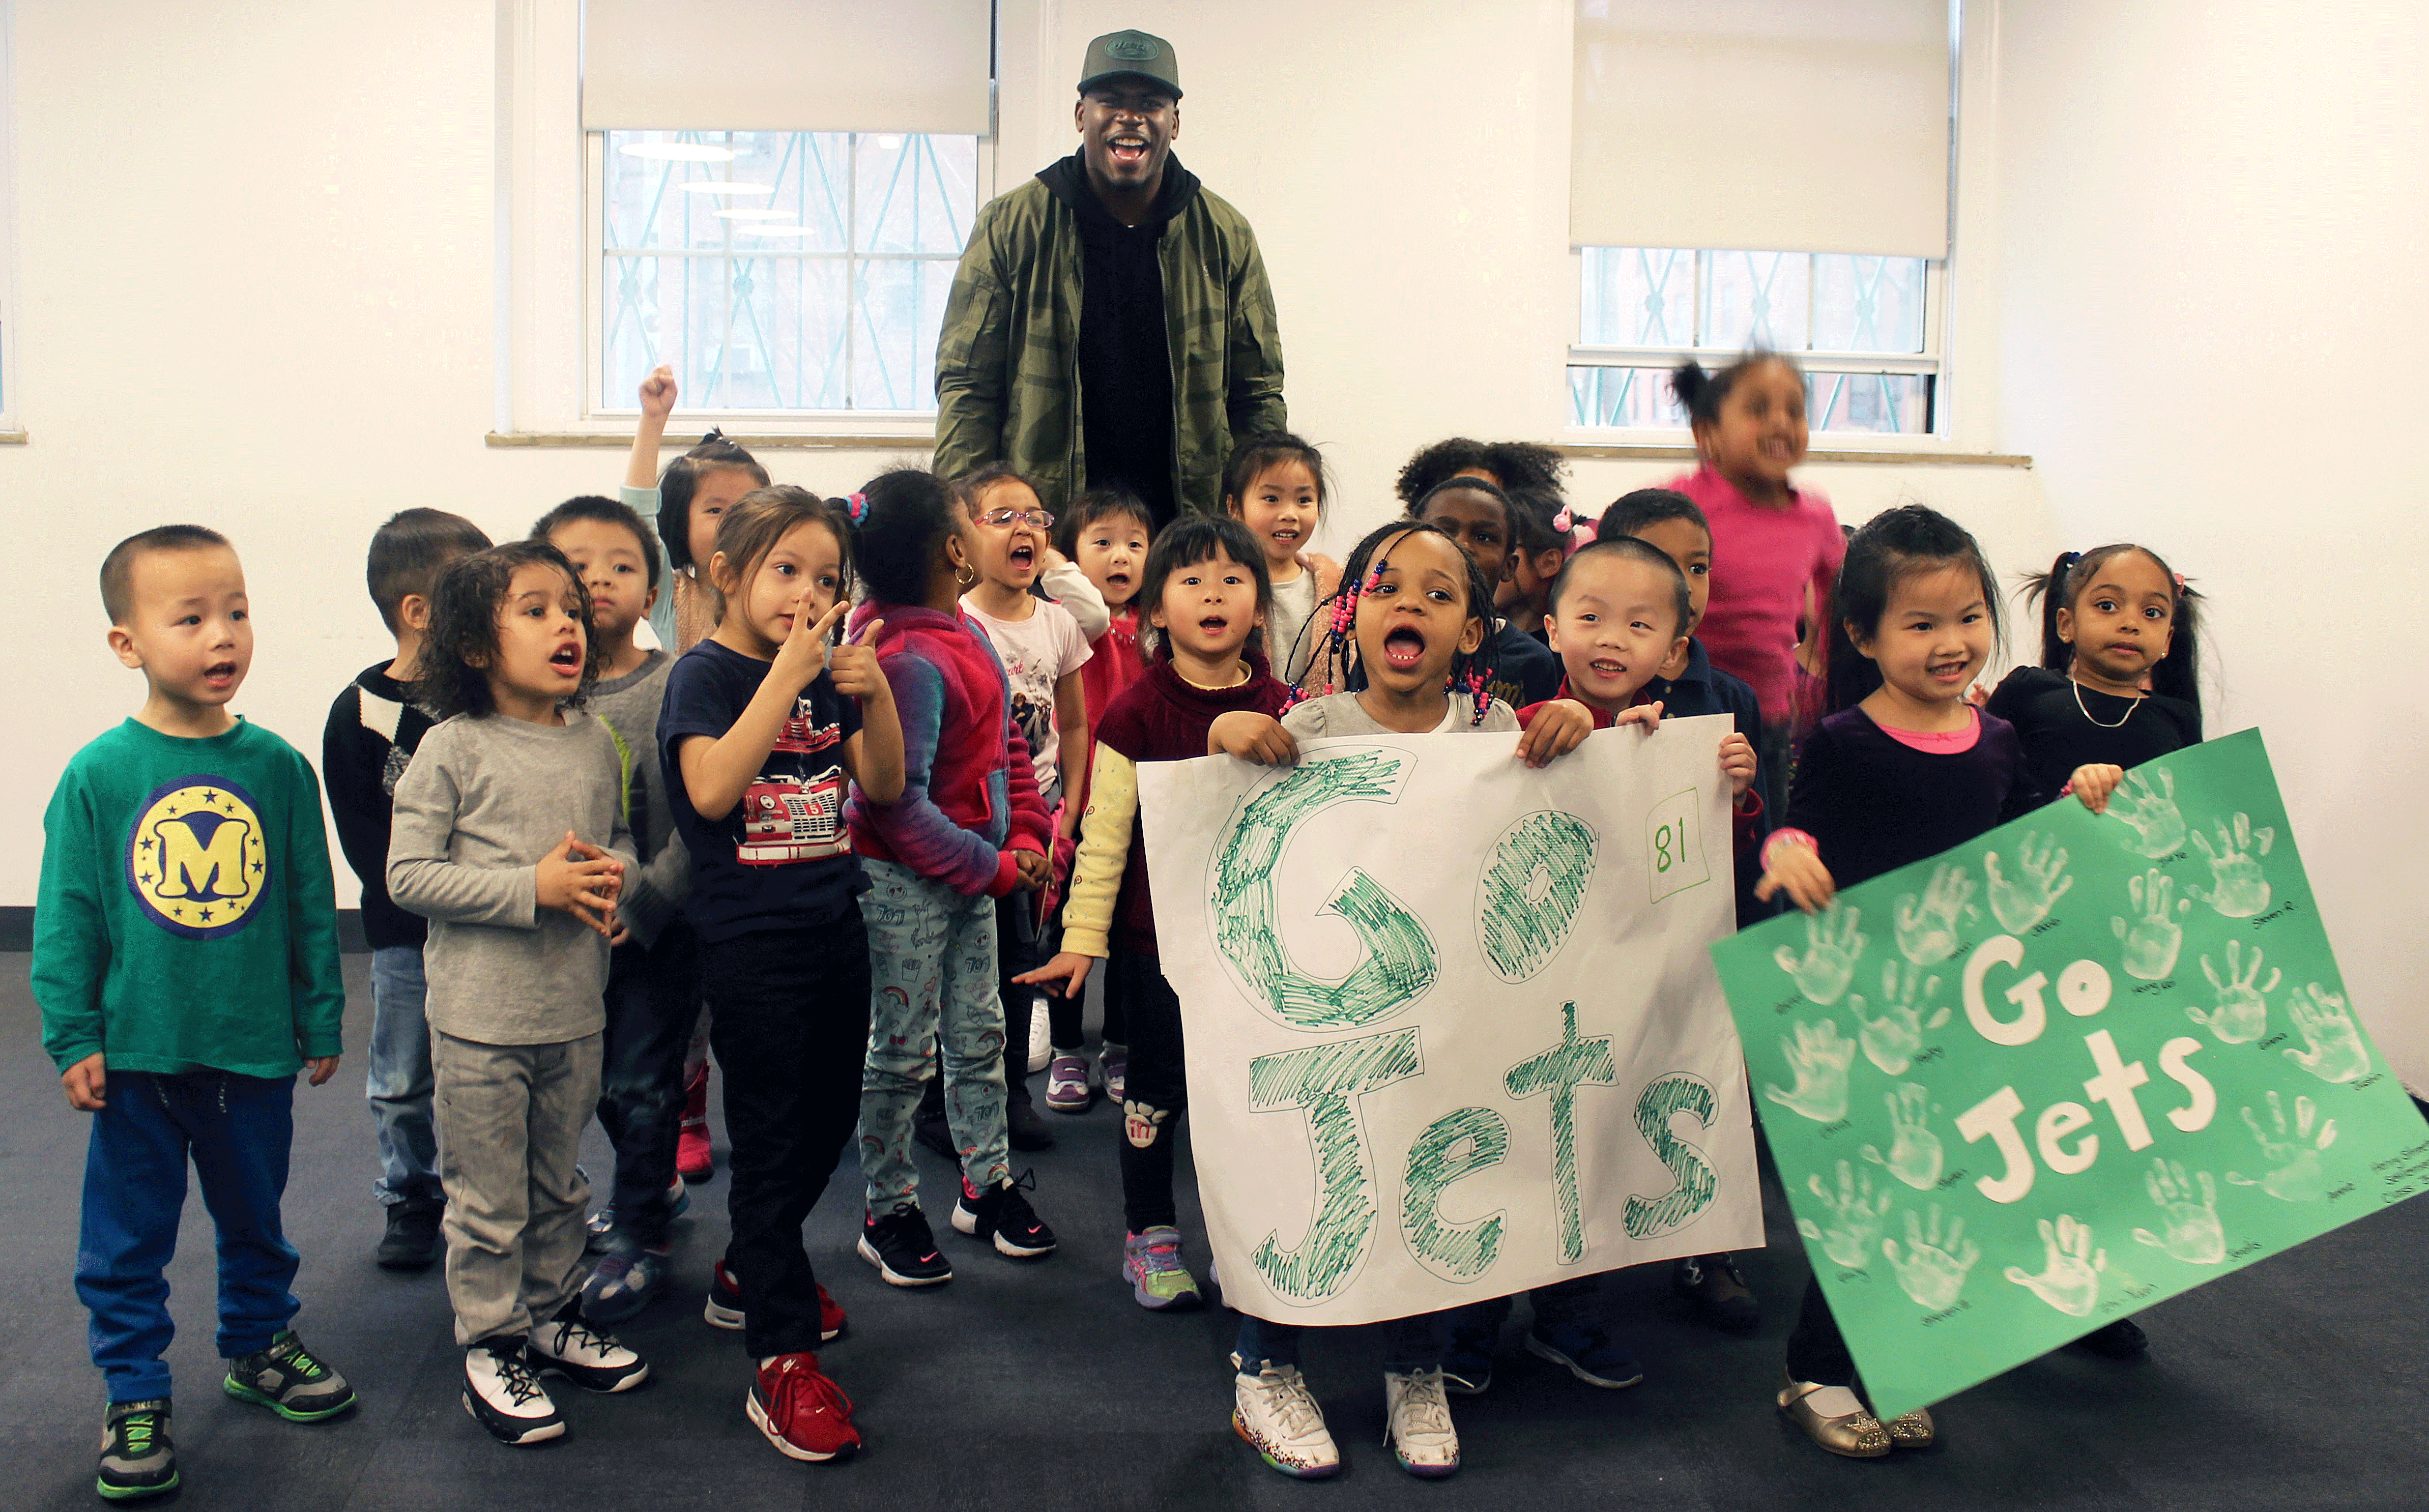 Football player Quincy Enunwa with smiling children from Early Childhood Education